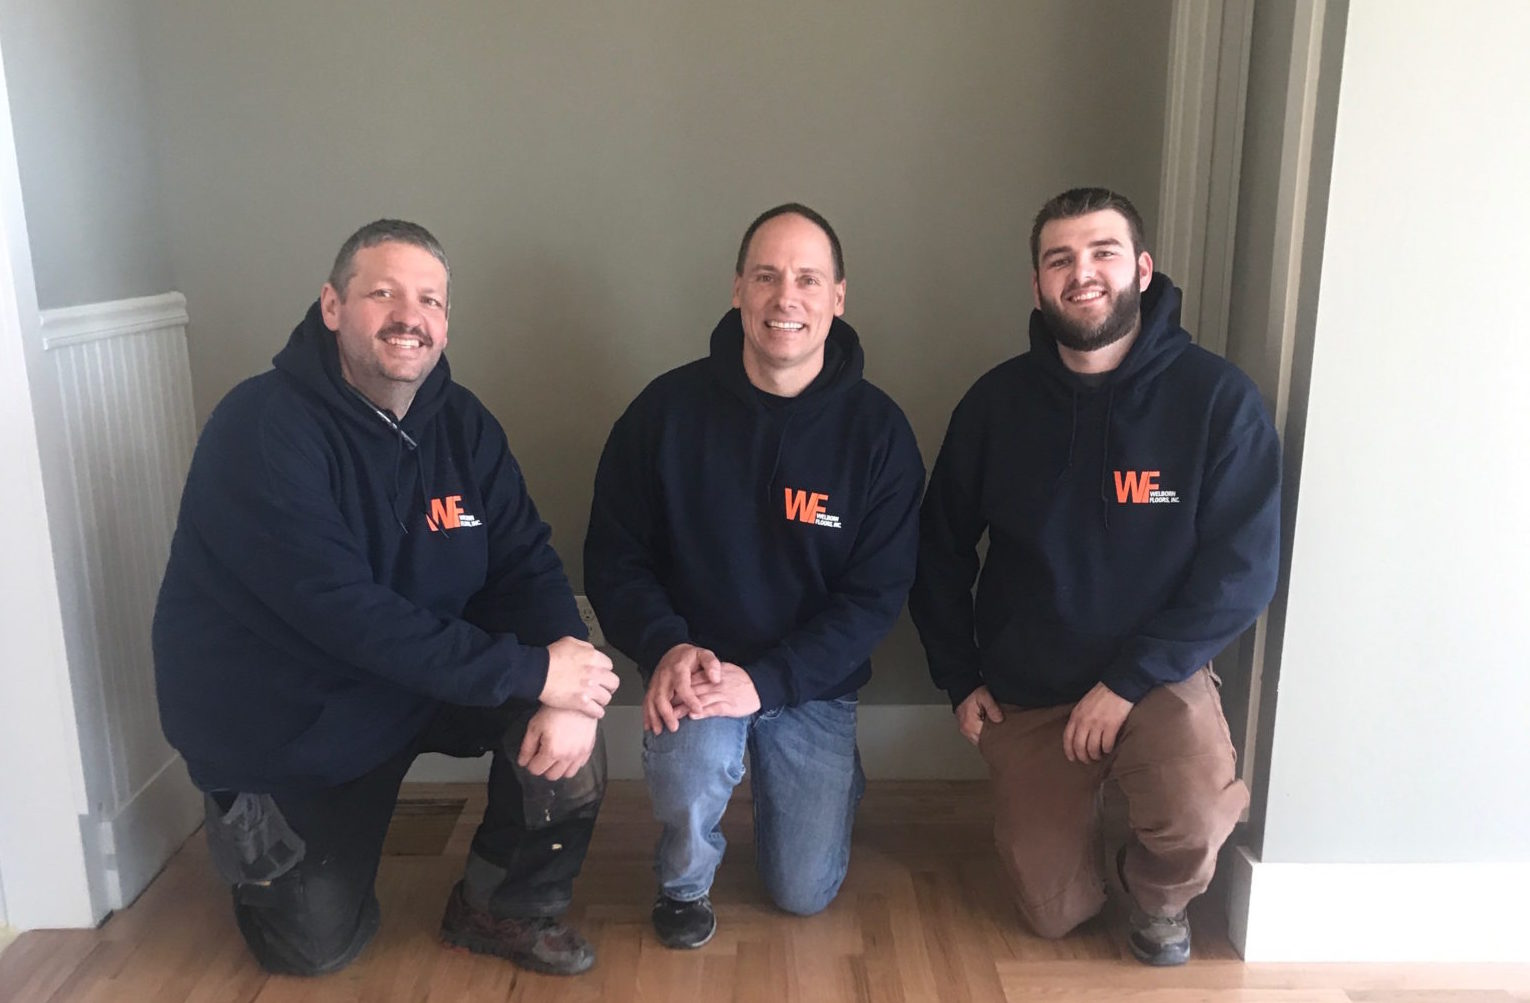 welborn floors, ryan welborn, dakota whelchel, jeremy haab, wood floor refinisher, wood floor installation, installers, wood floor refinishing, bloomington IL, central Illinois, dustless floor refinishing